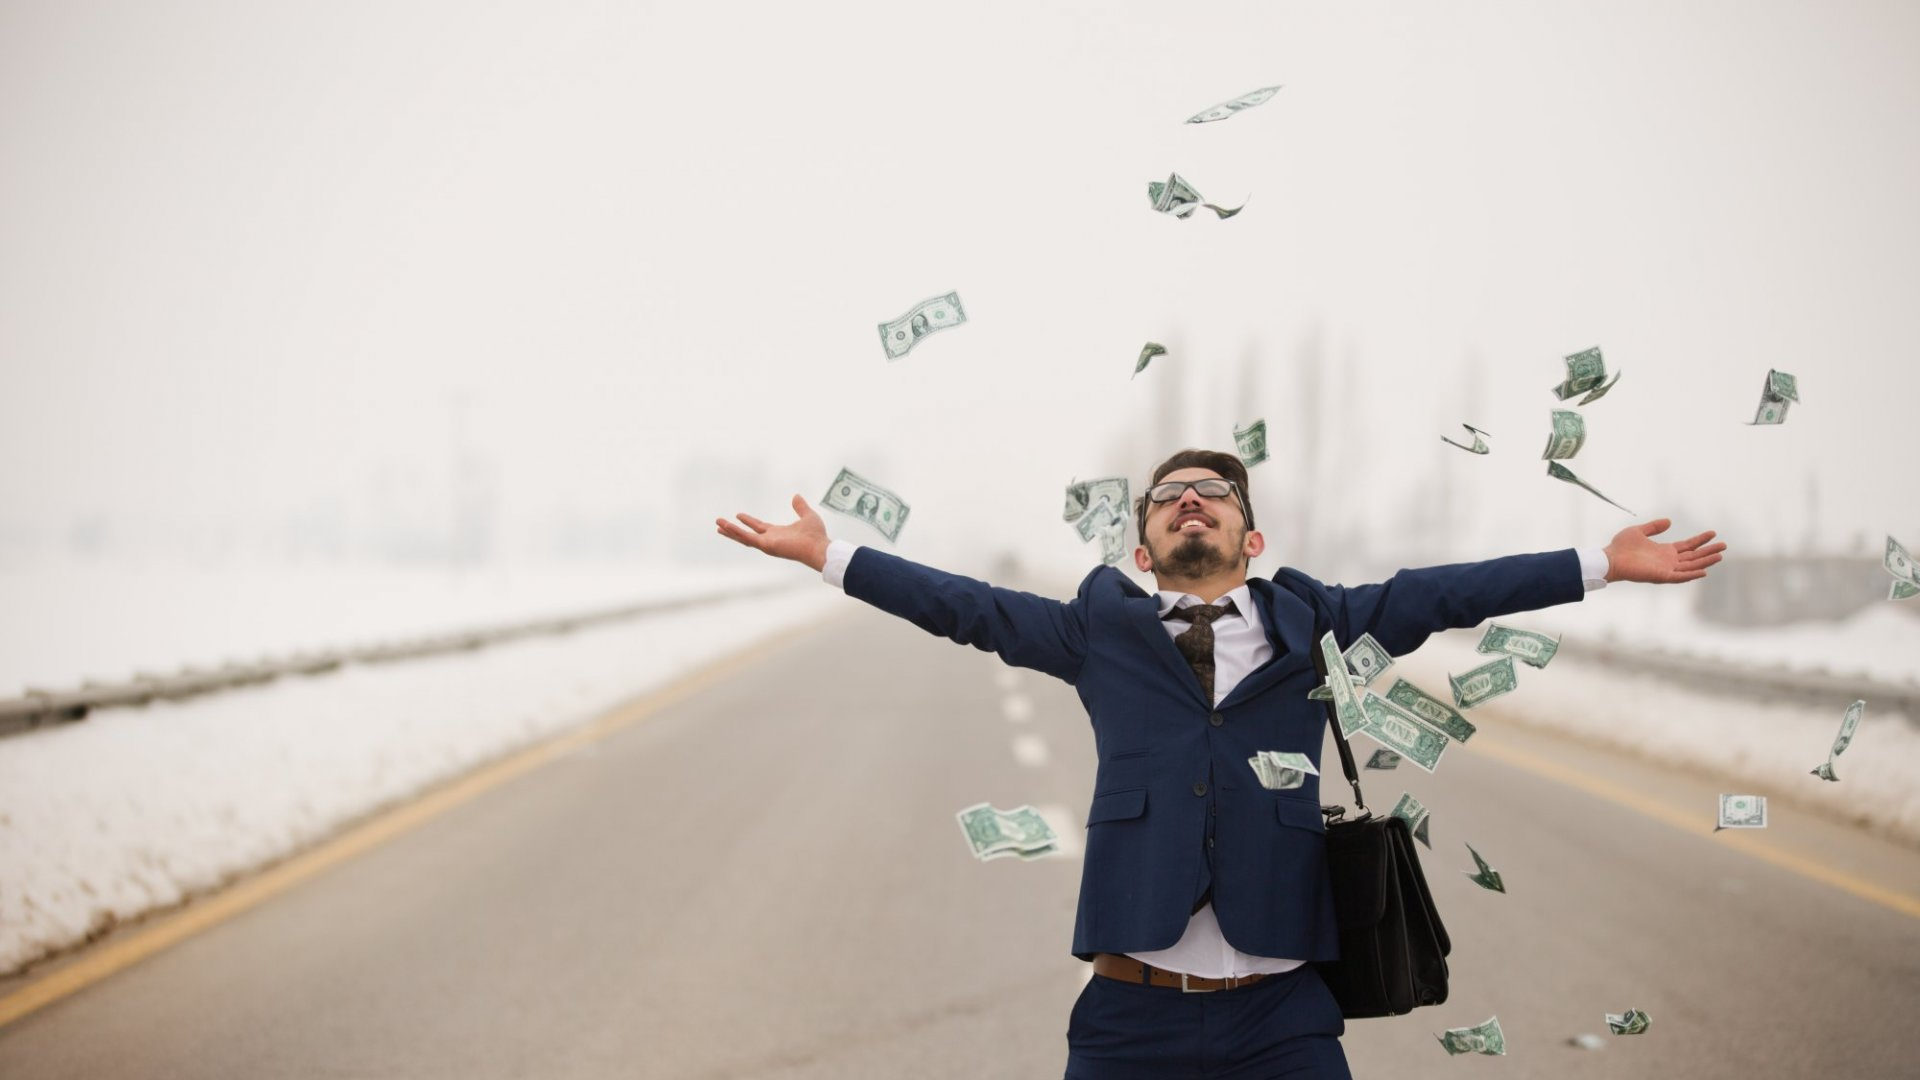 Are You Getting Paid Less Than You're Worth? These 4 Questions Will Help You Find Out